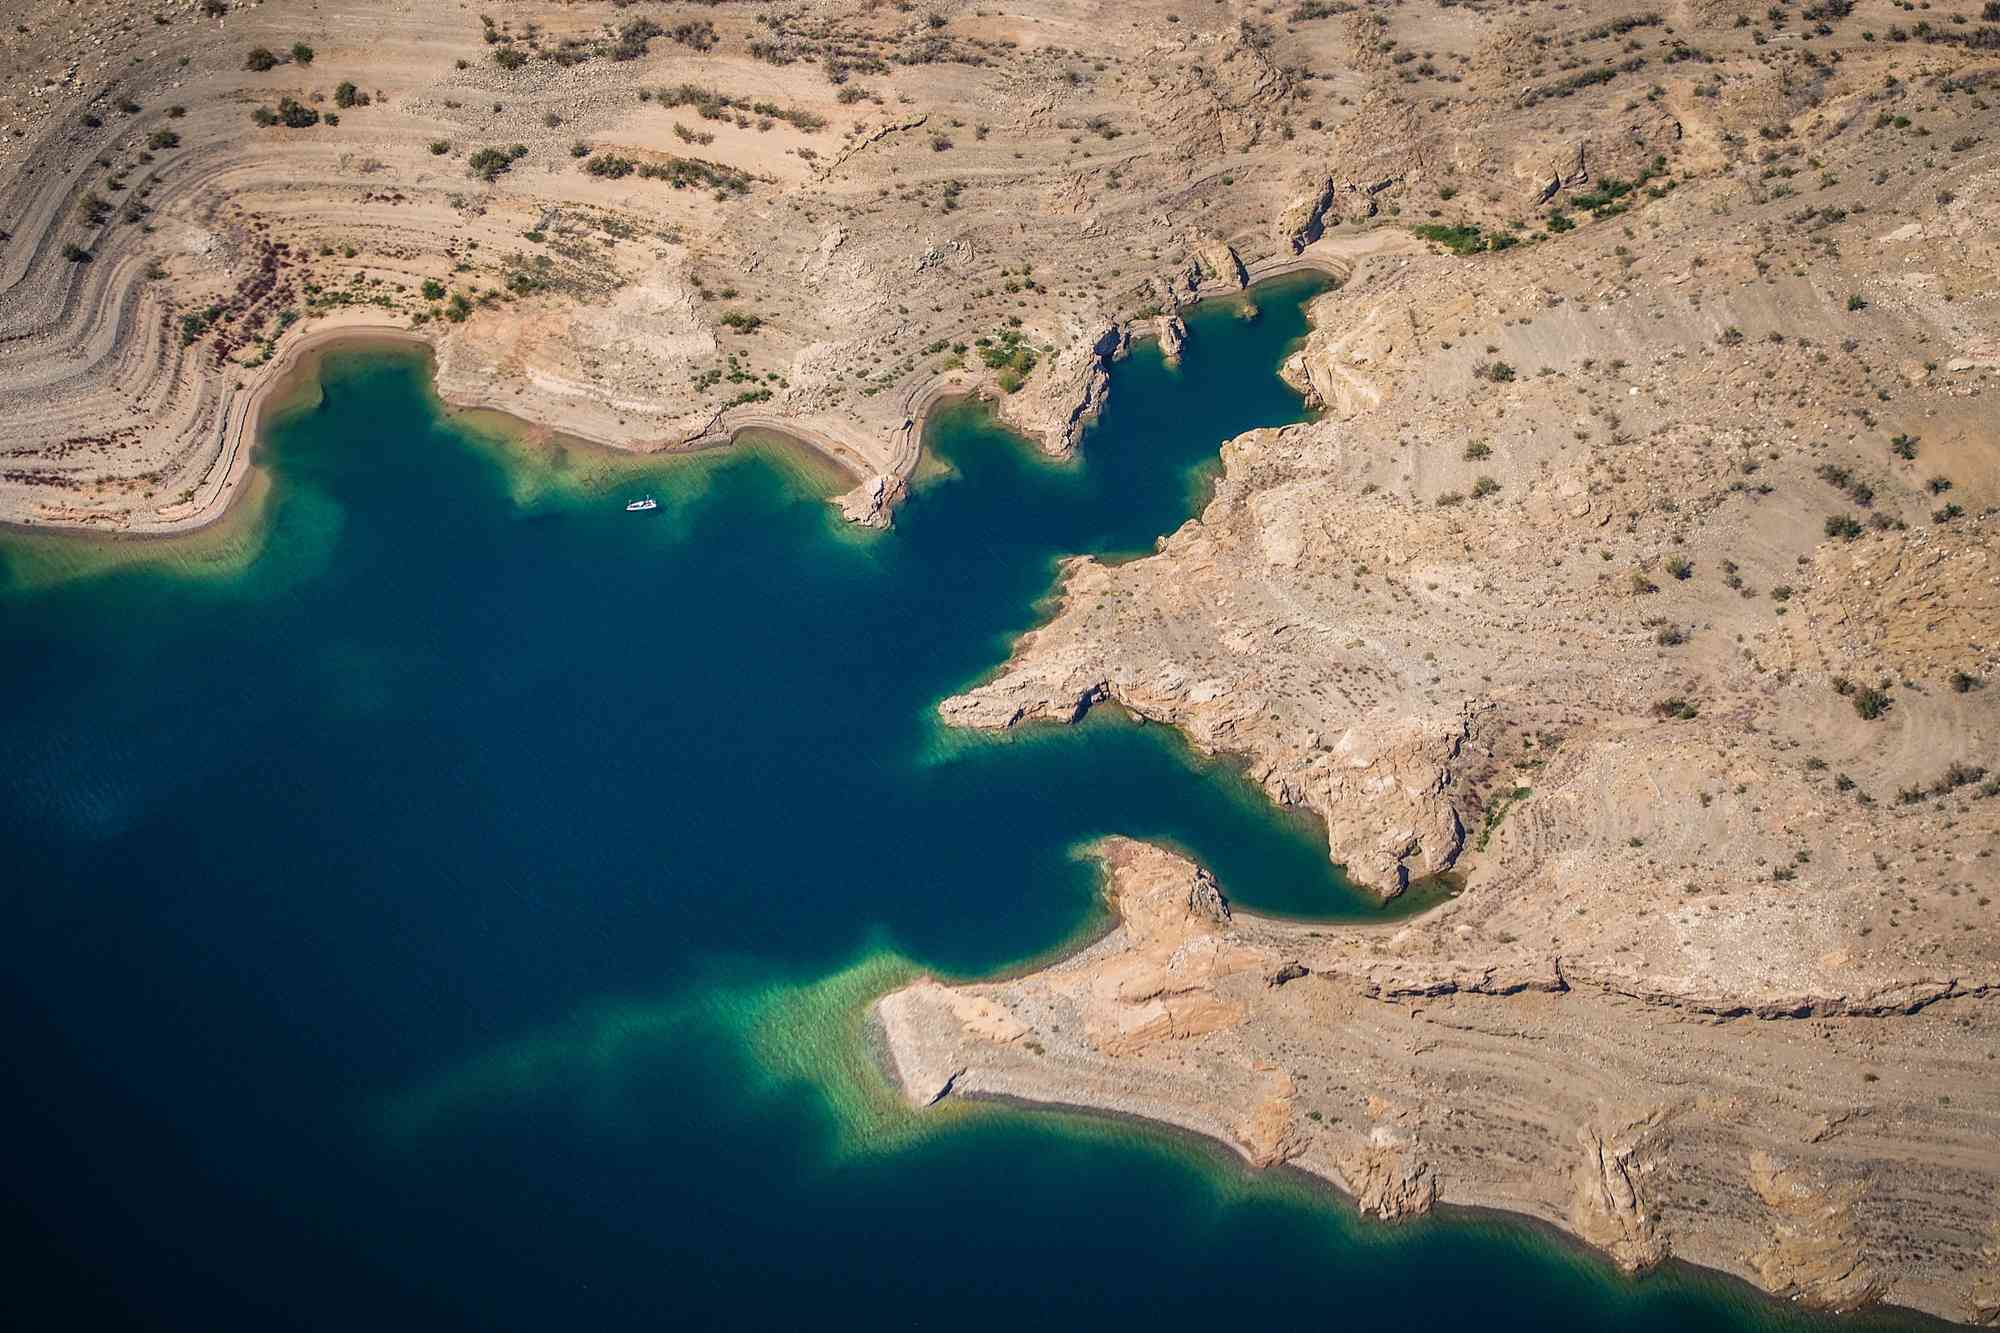 High-angle view of Lake Mead surrounded by desert